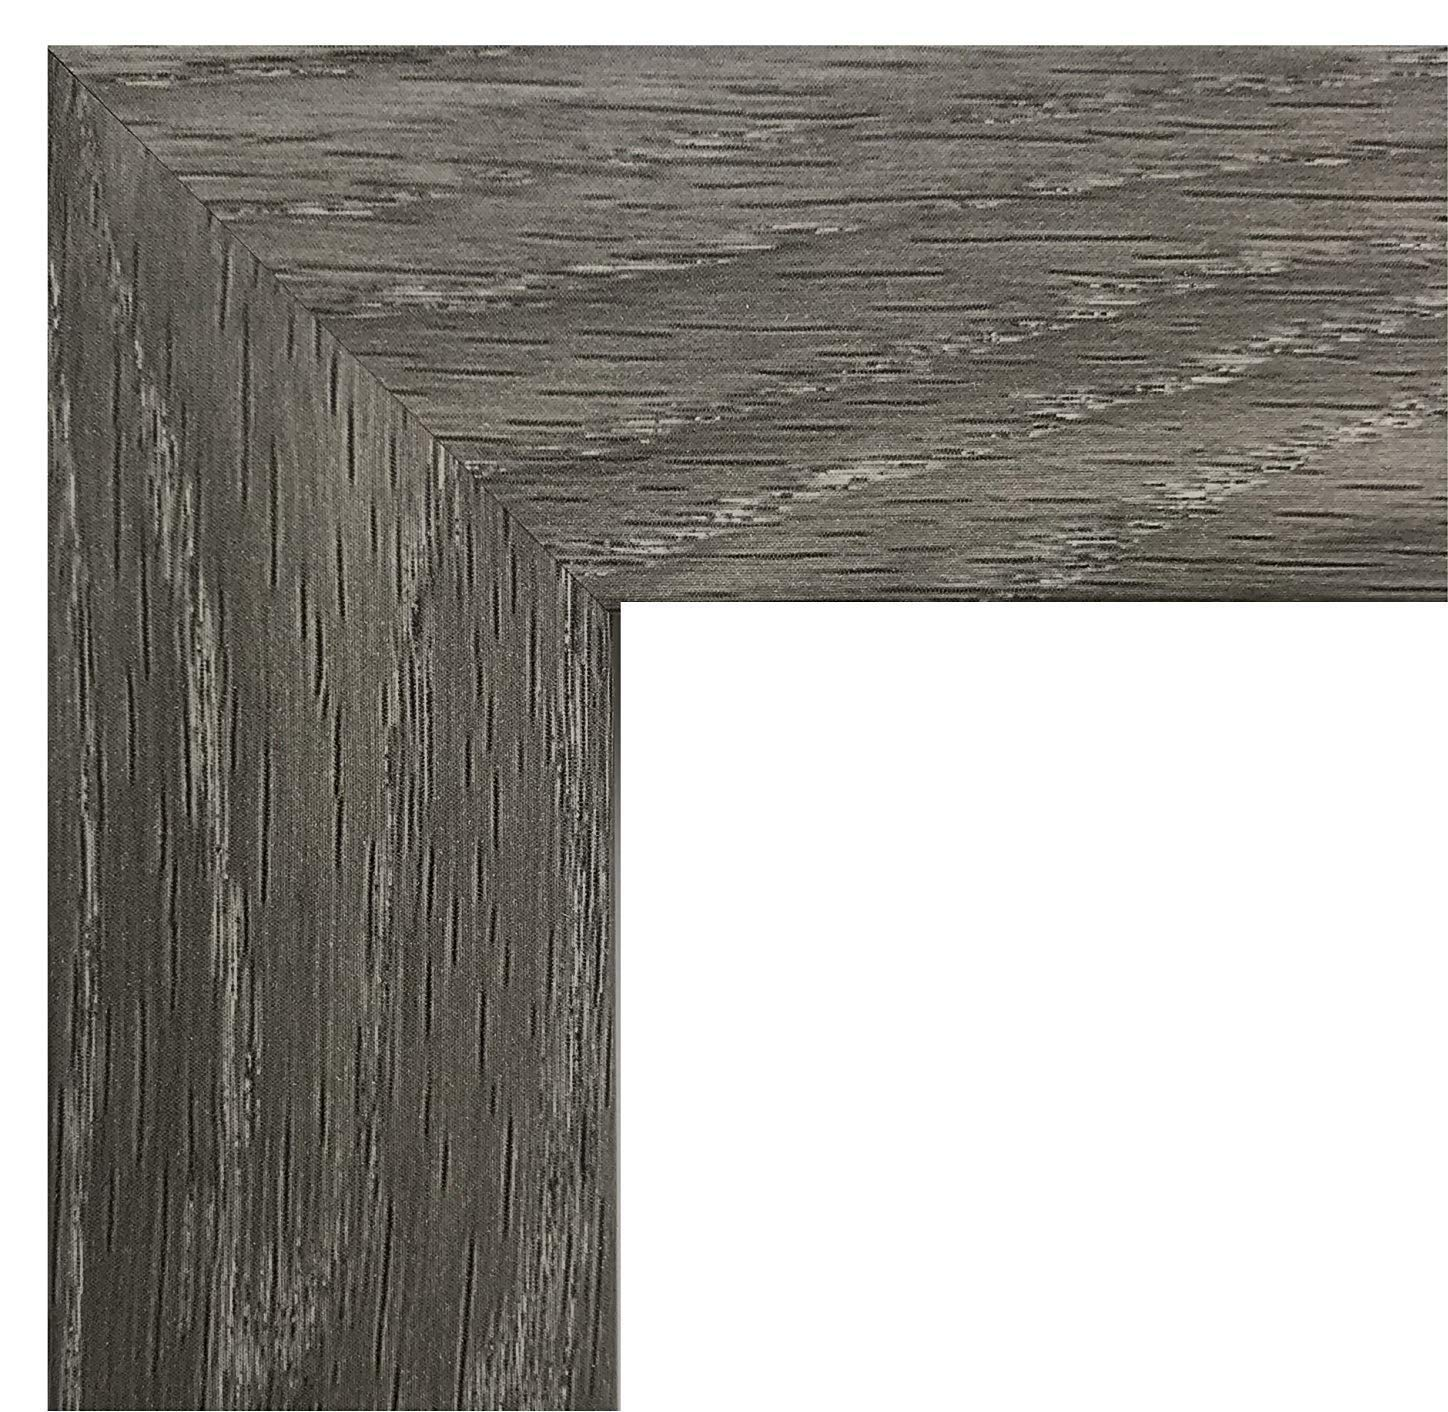 US Art Frames 18 by 24-Inch Picture Frame, Smooth Wrap Finish, 1.25-Inch Wide, Distressed Rustic Grey Barnwood (This is NOT Real Barnwood), Wood Composite MDF